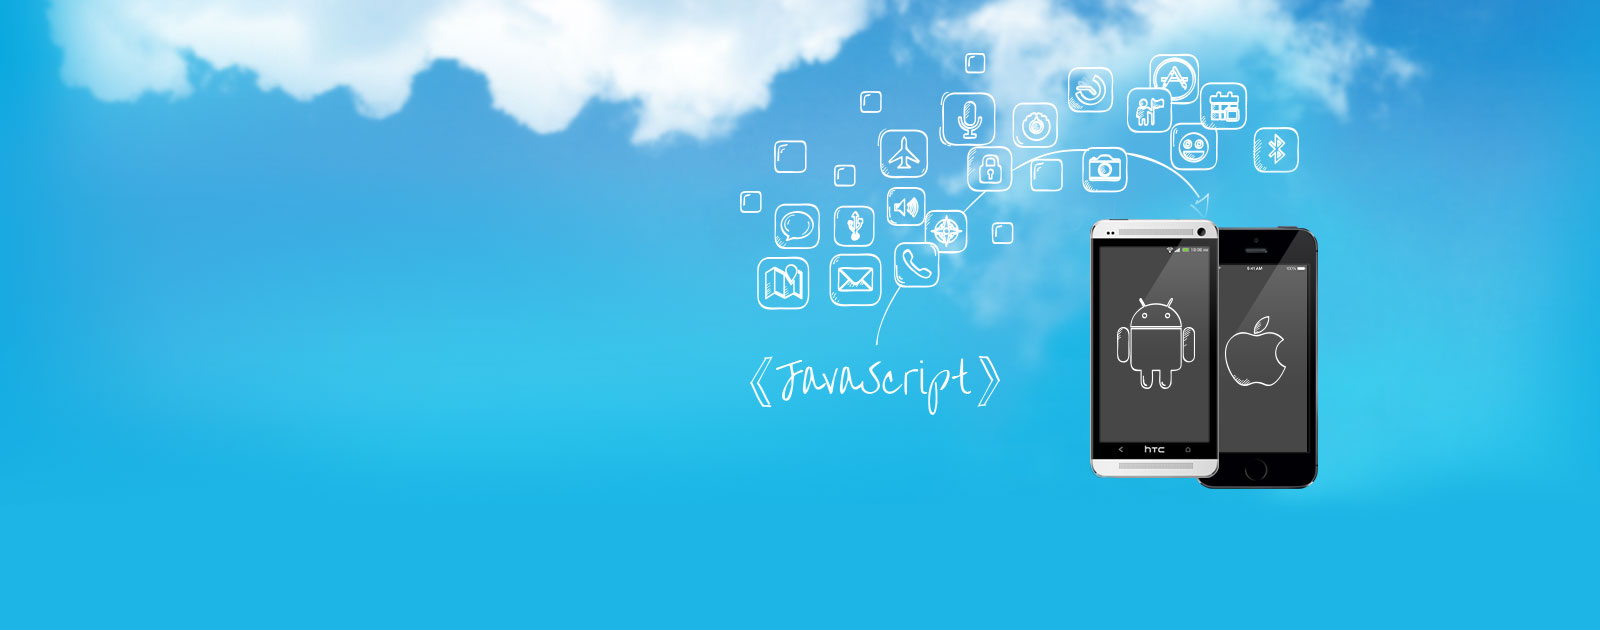 technobd mobile application development